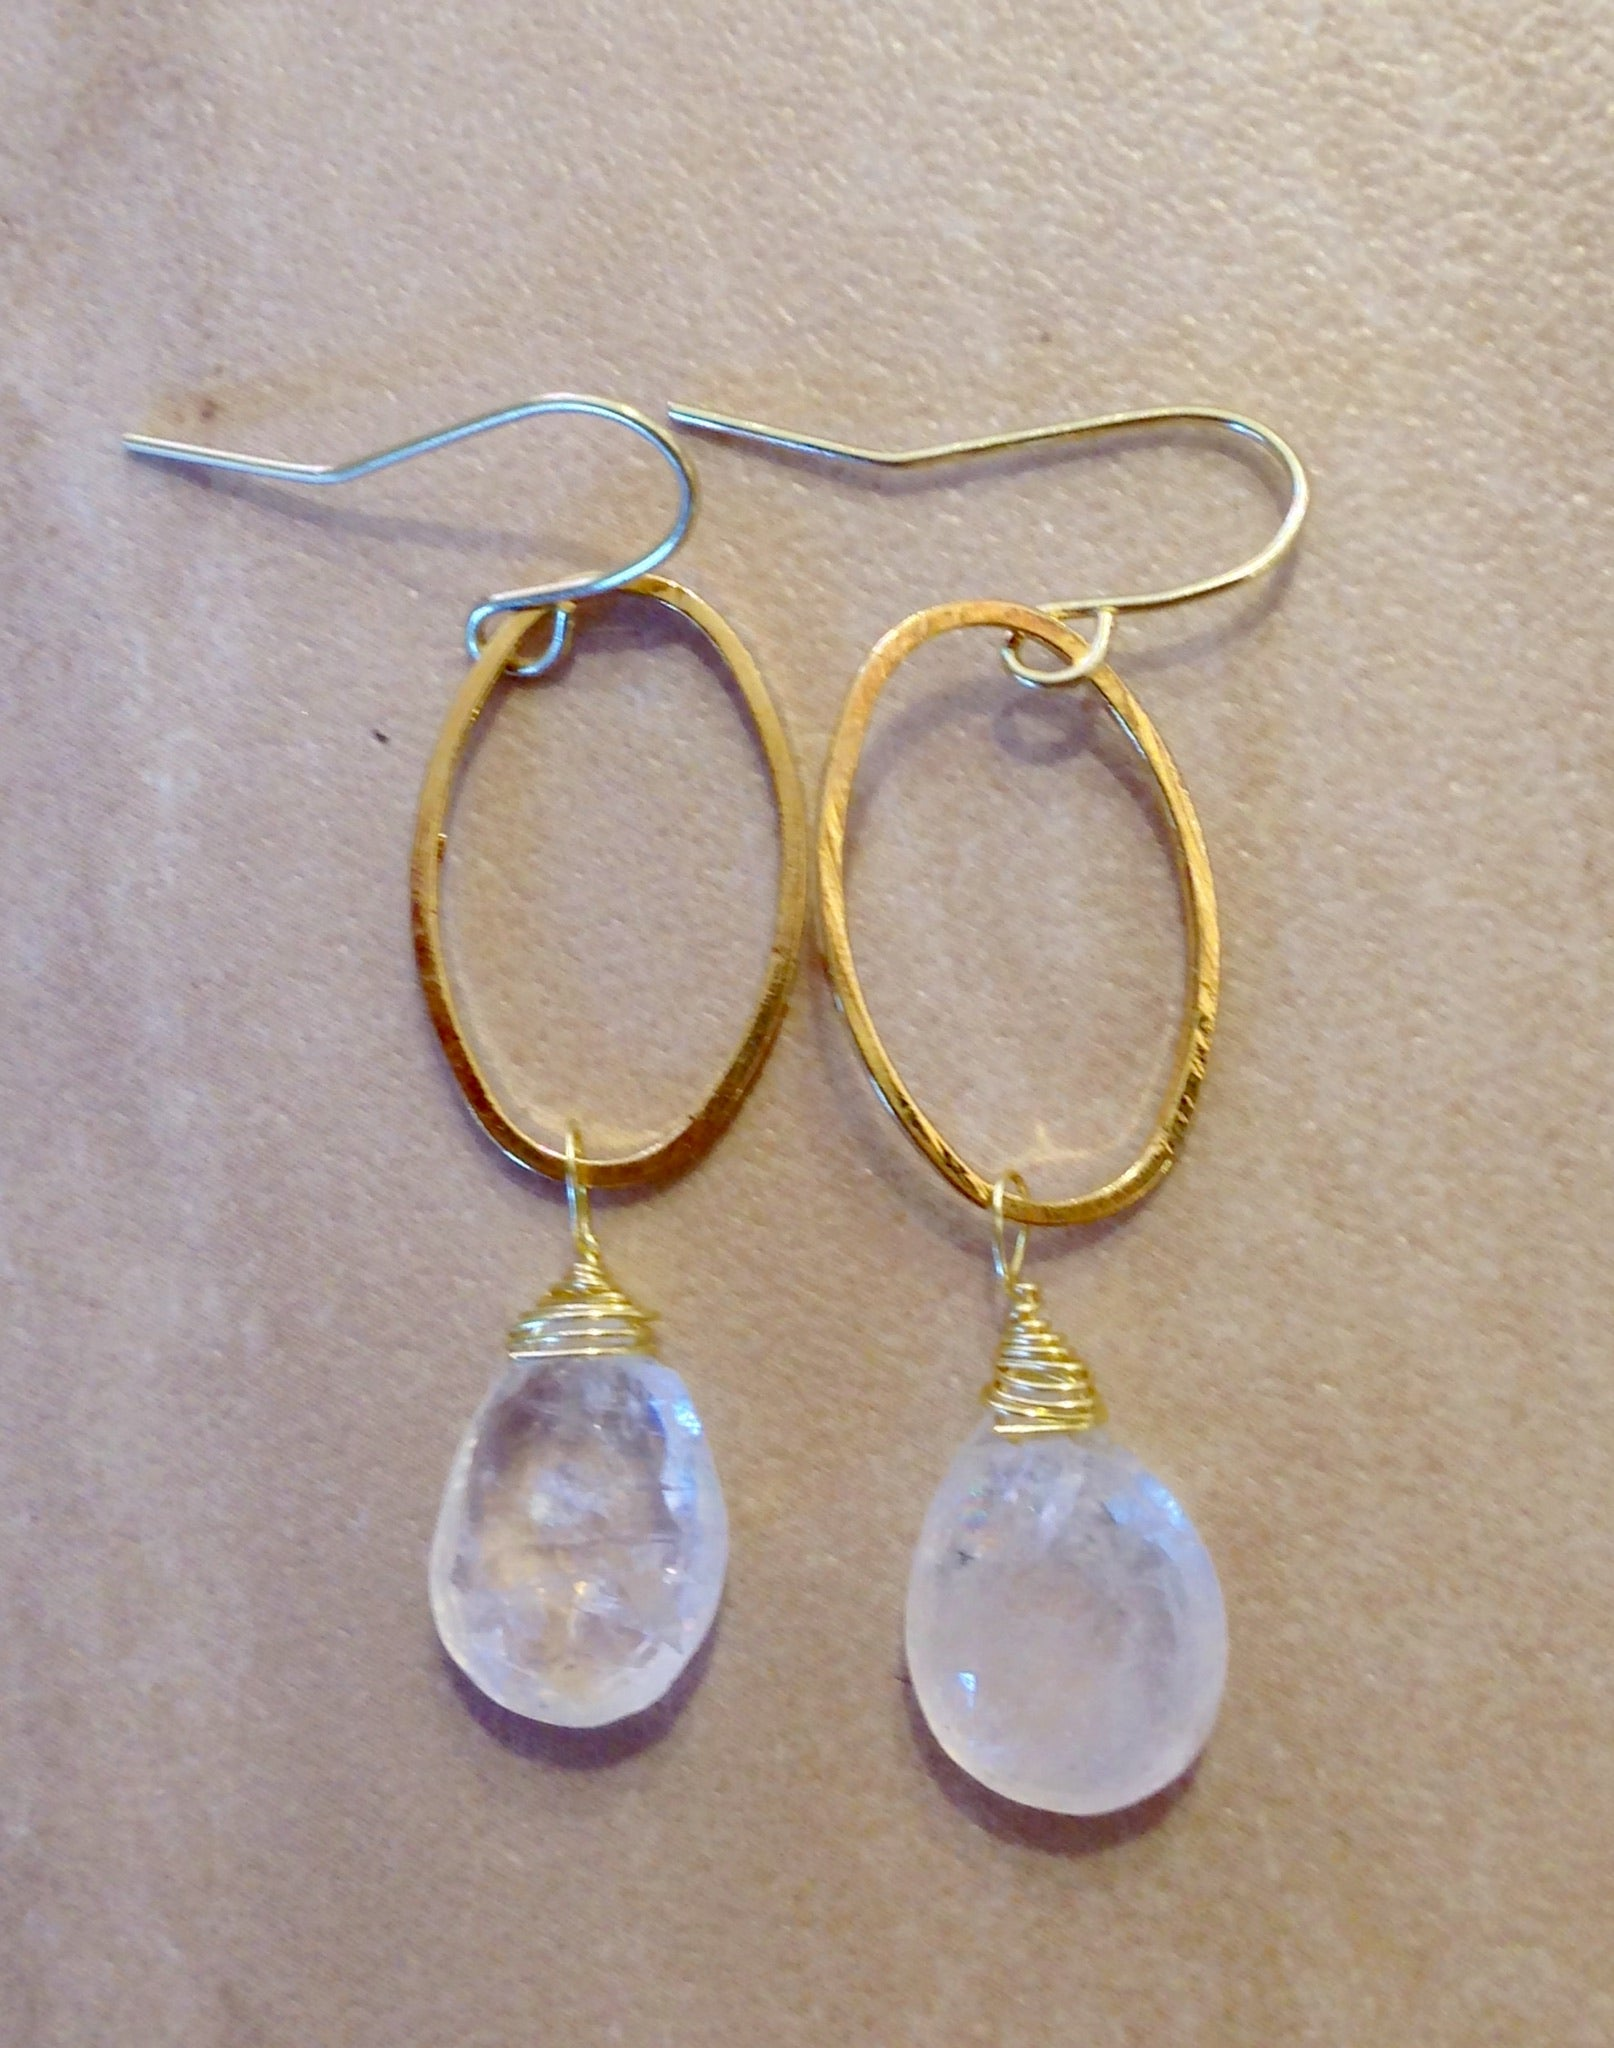 Moonstone drop earrings.